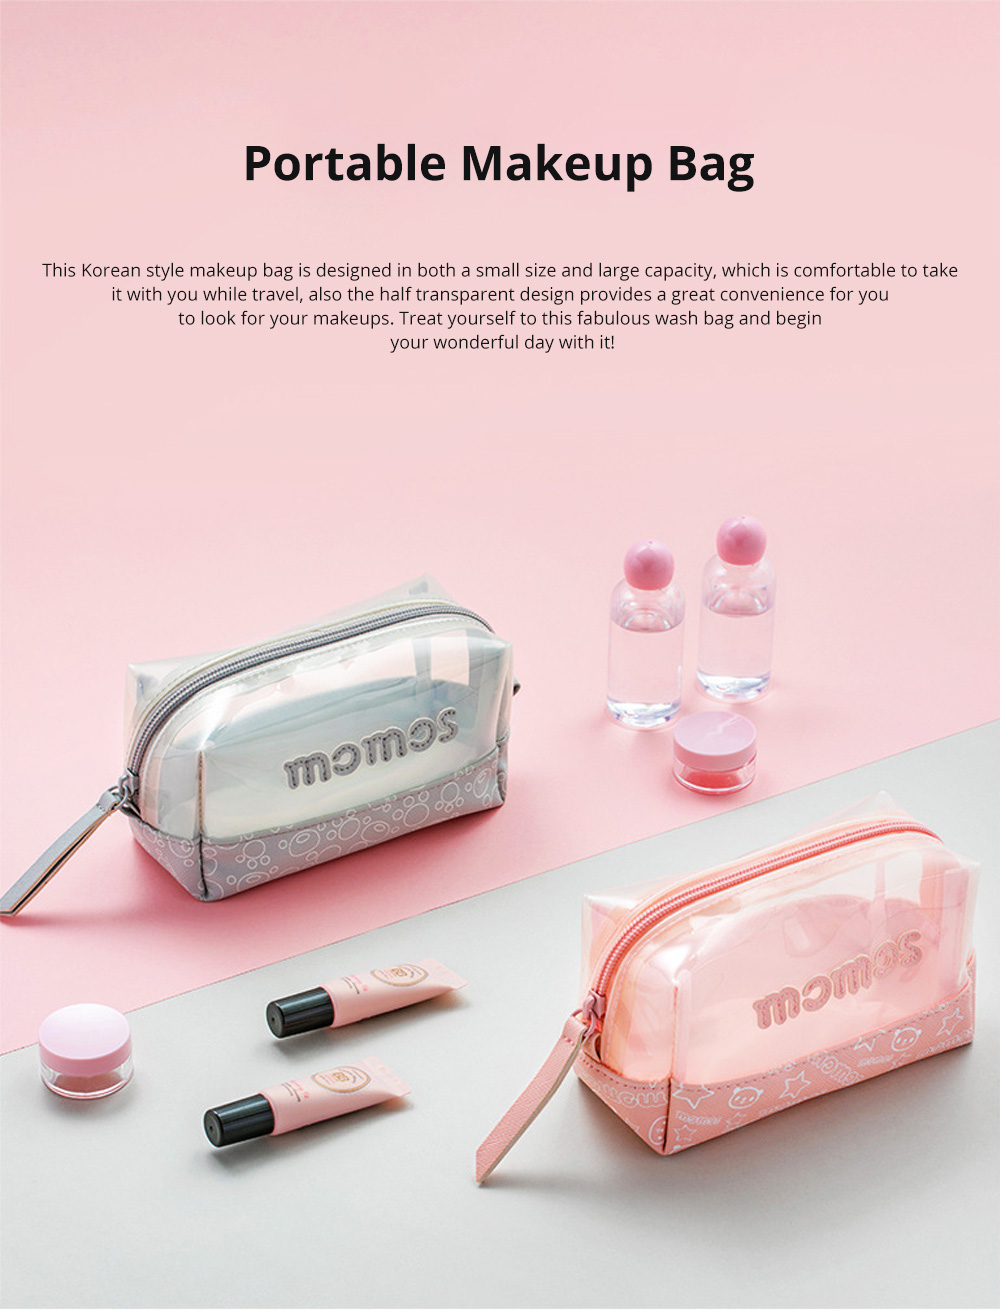 JORDAN&JUDY Water-proof Small Size Wash Bag Transparent PVC Material Portable Handbag for Girl's Makeup Travel & Home Use 0